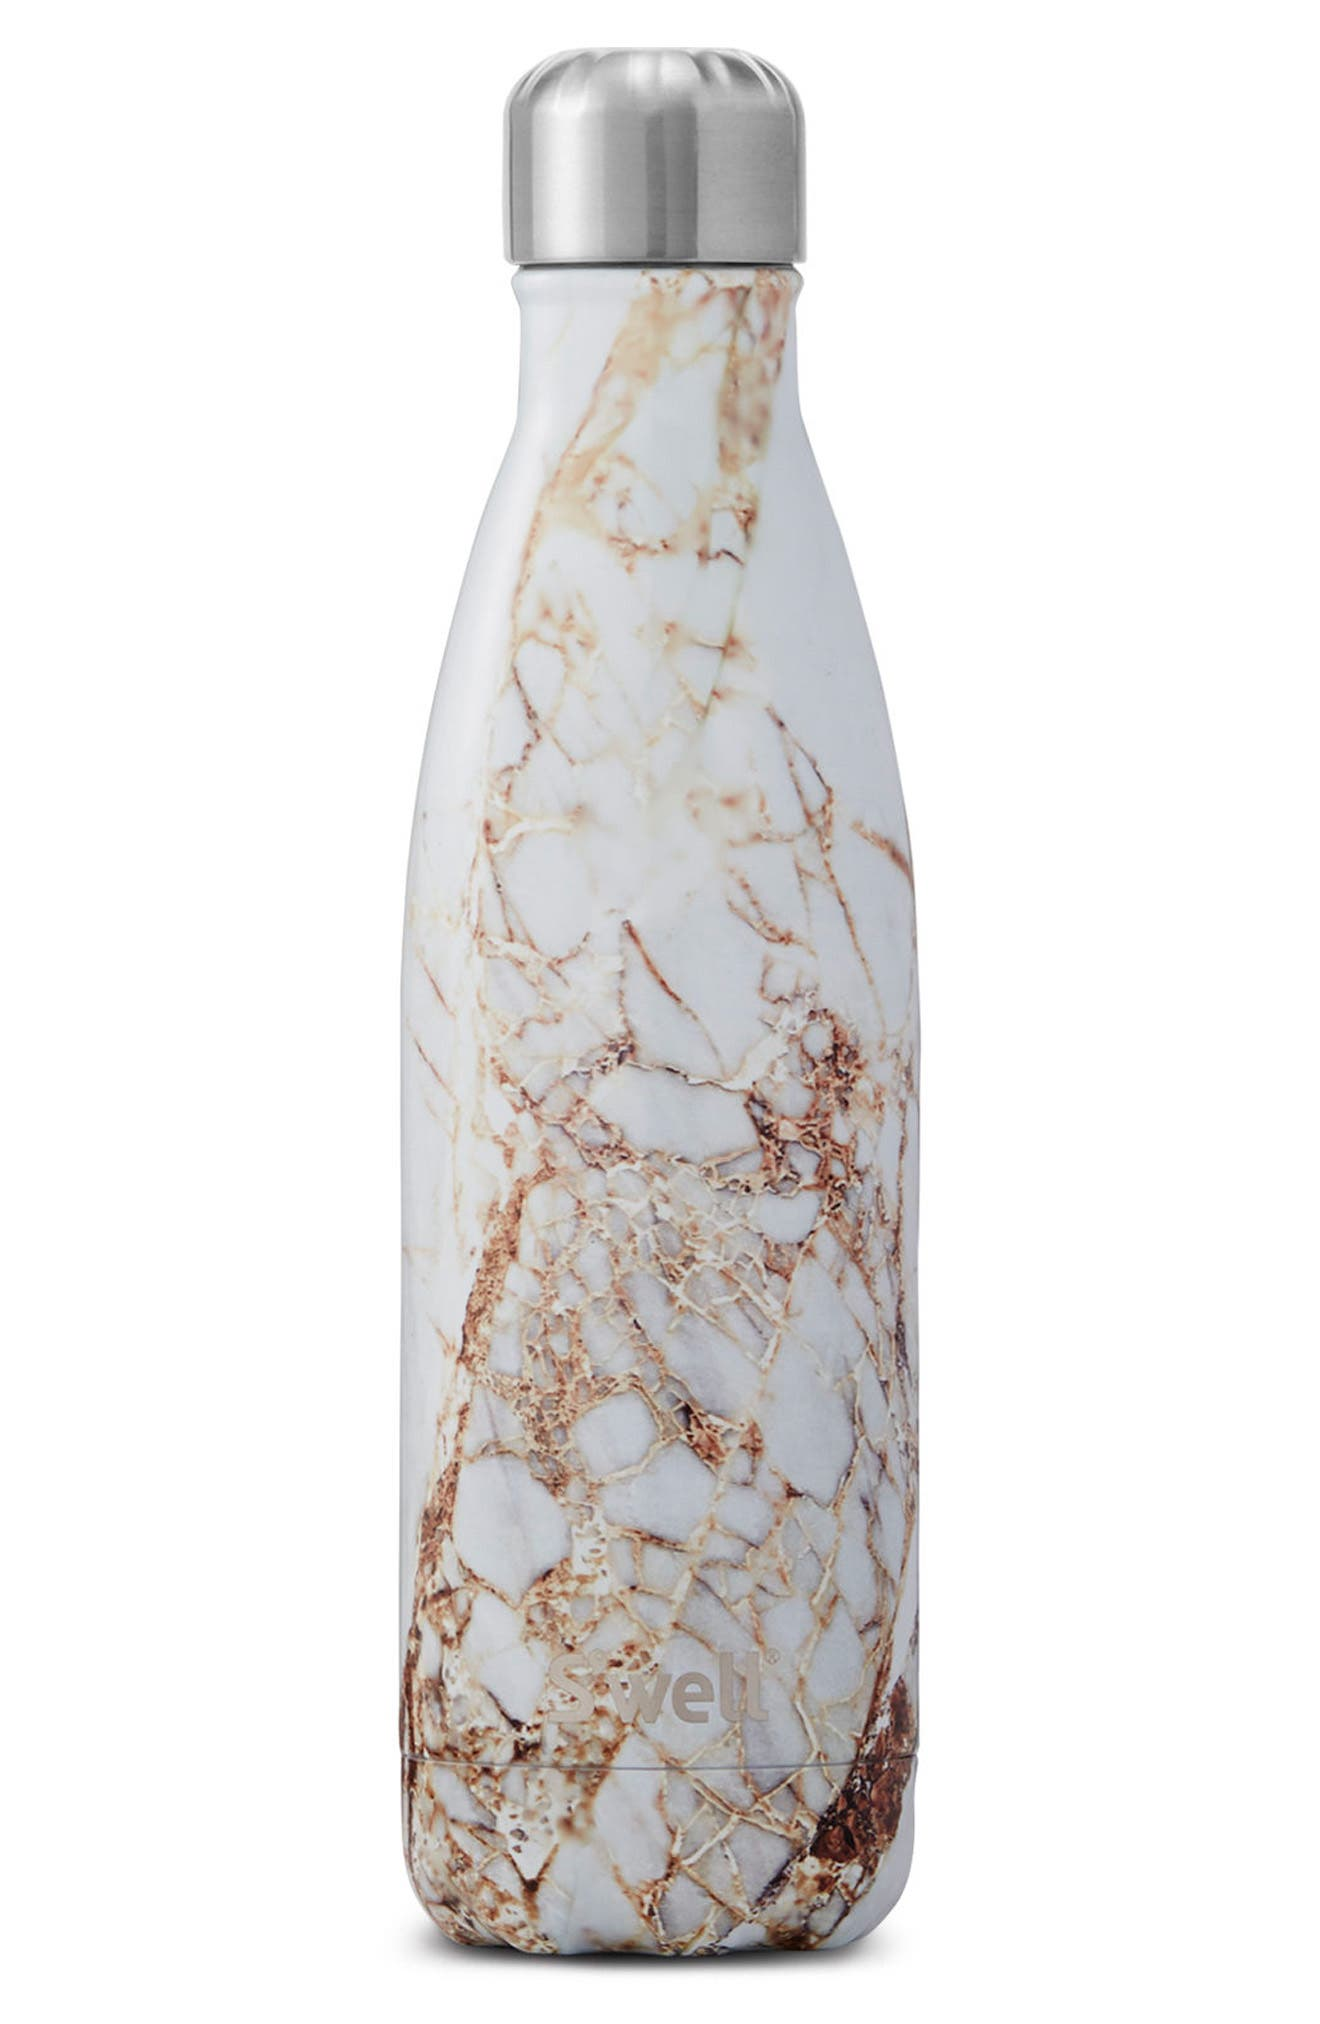 Main Image - S'well Elements Collection - Calacatta Gold Insulated Stainless Steel Water Bottle